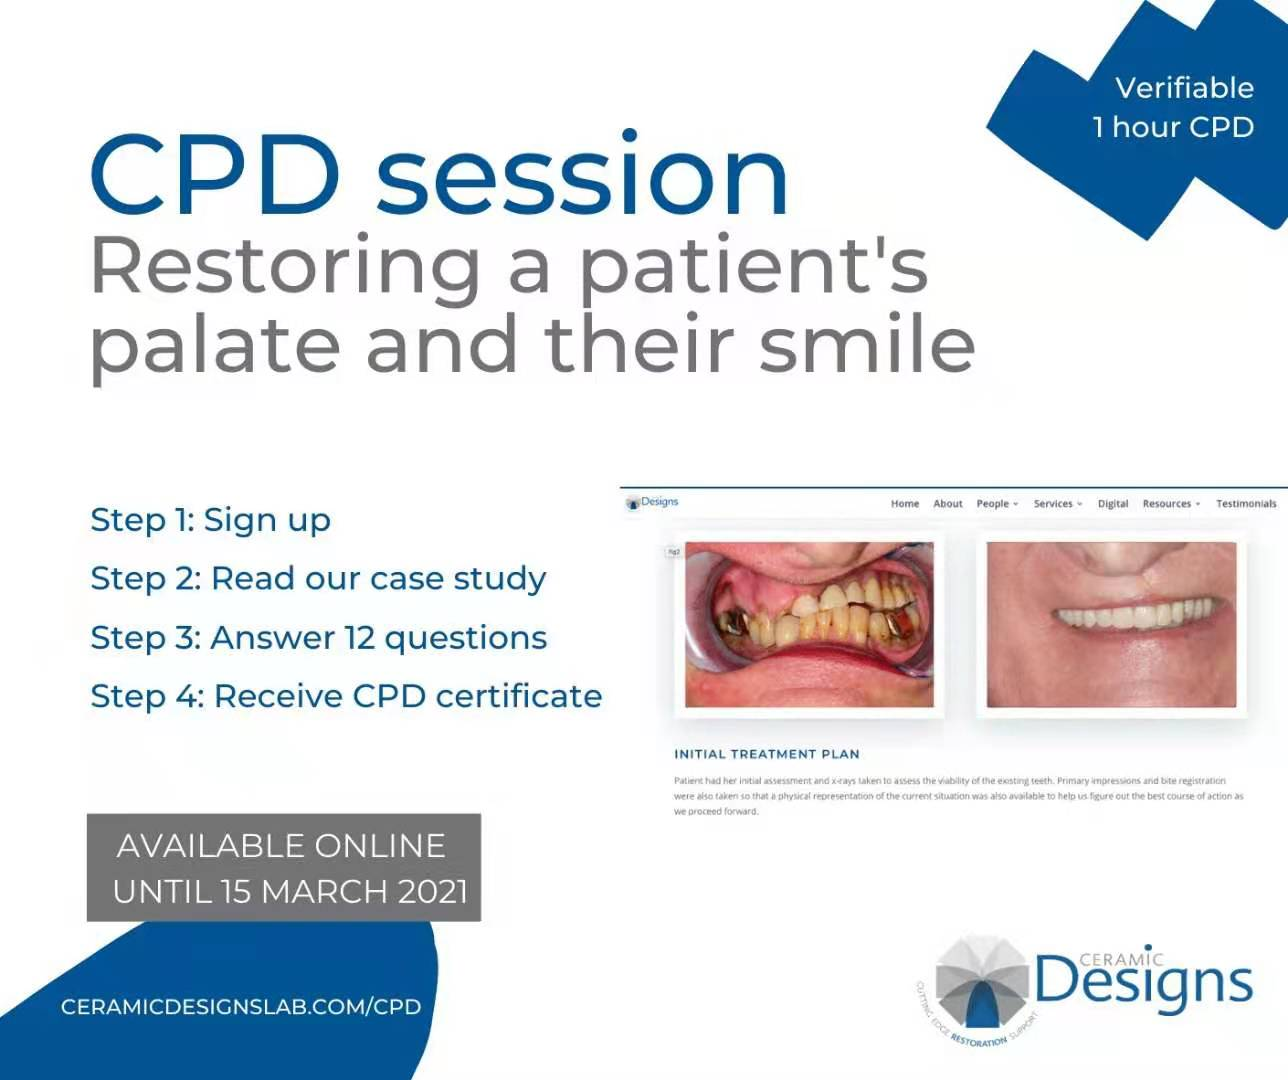 cpd session cdl